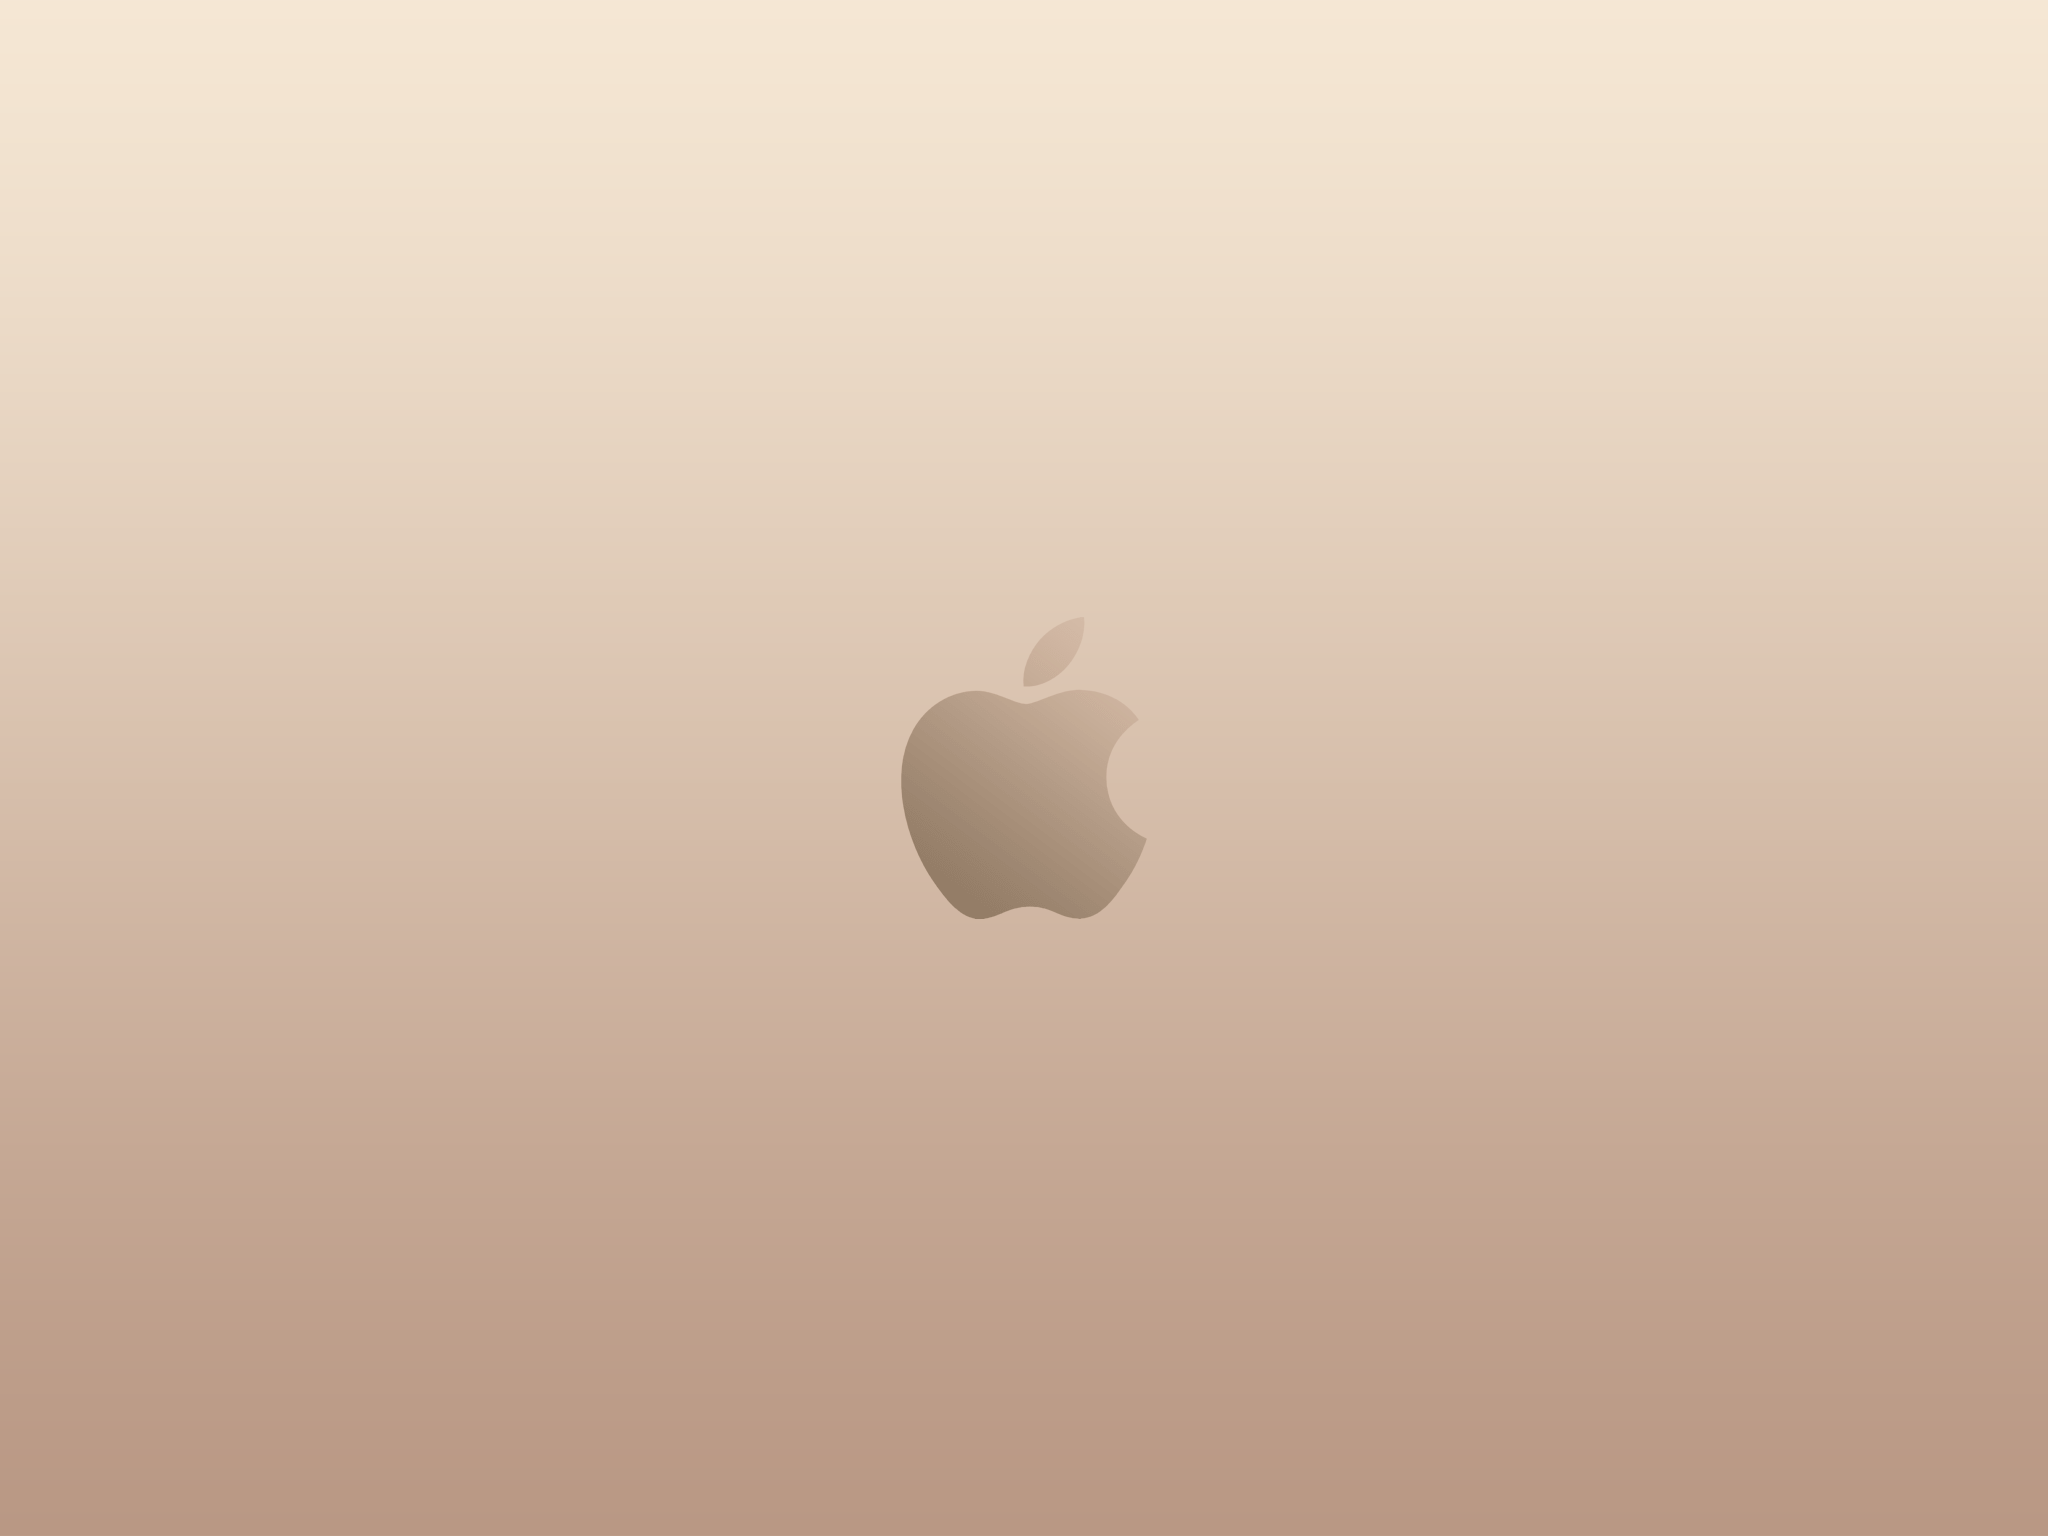 apple_logo_gold_wallpaper_by_superquanganh-dazmi0p.png